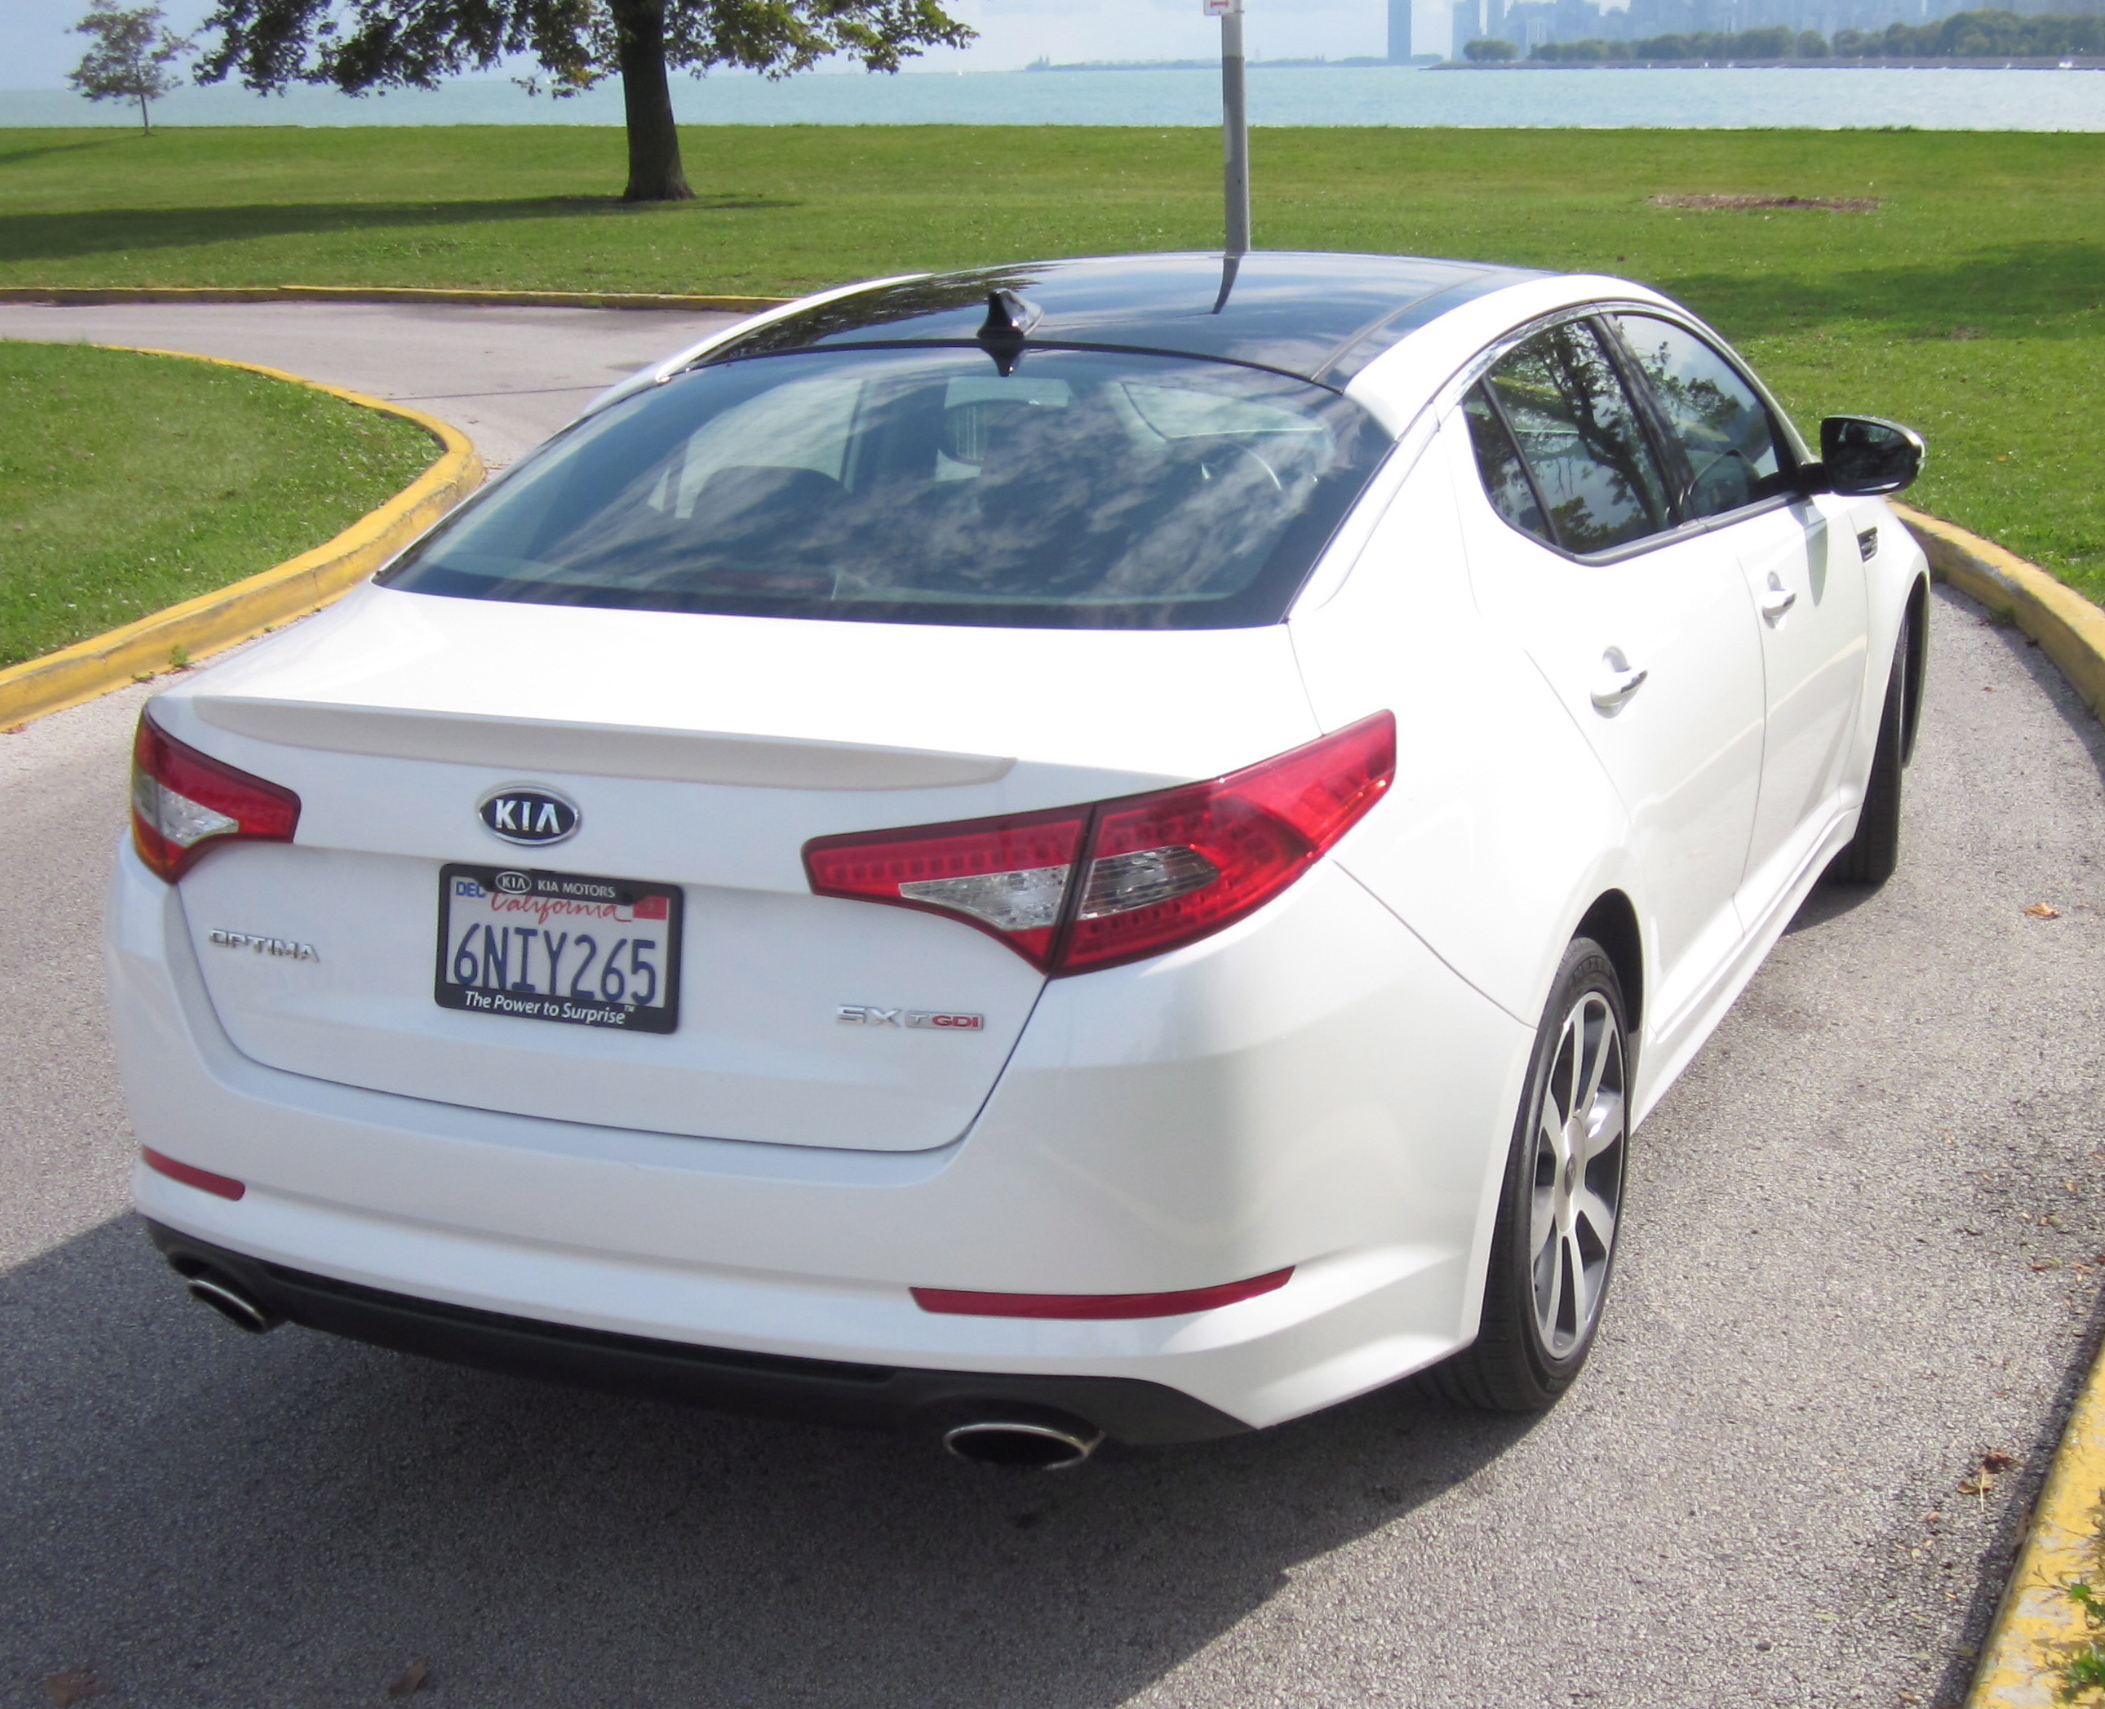 2012 Kia Optima (select To View Enlarged Photo)